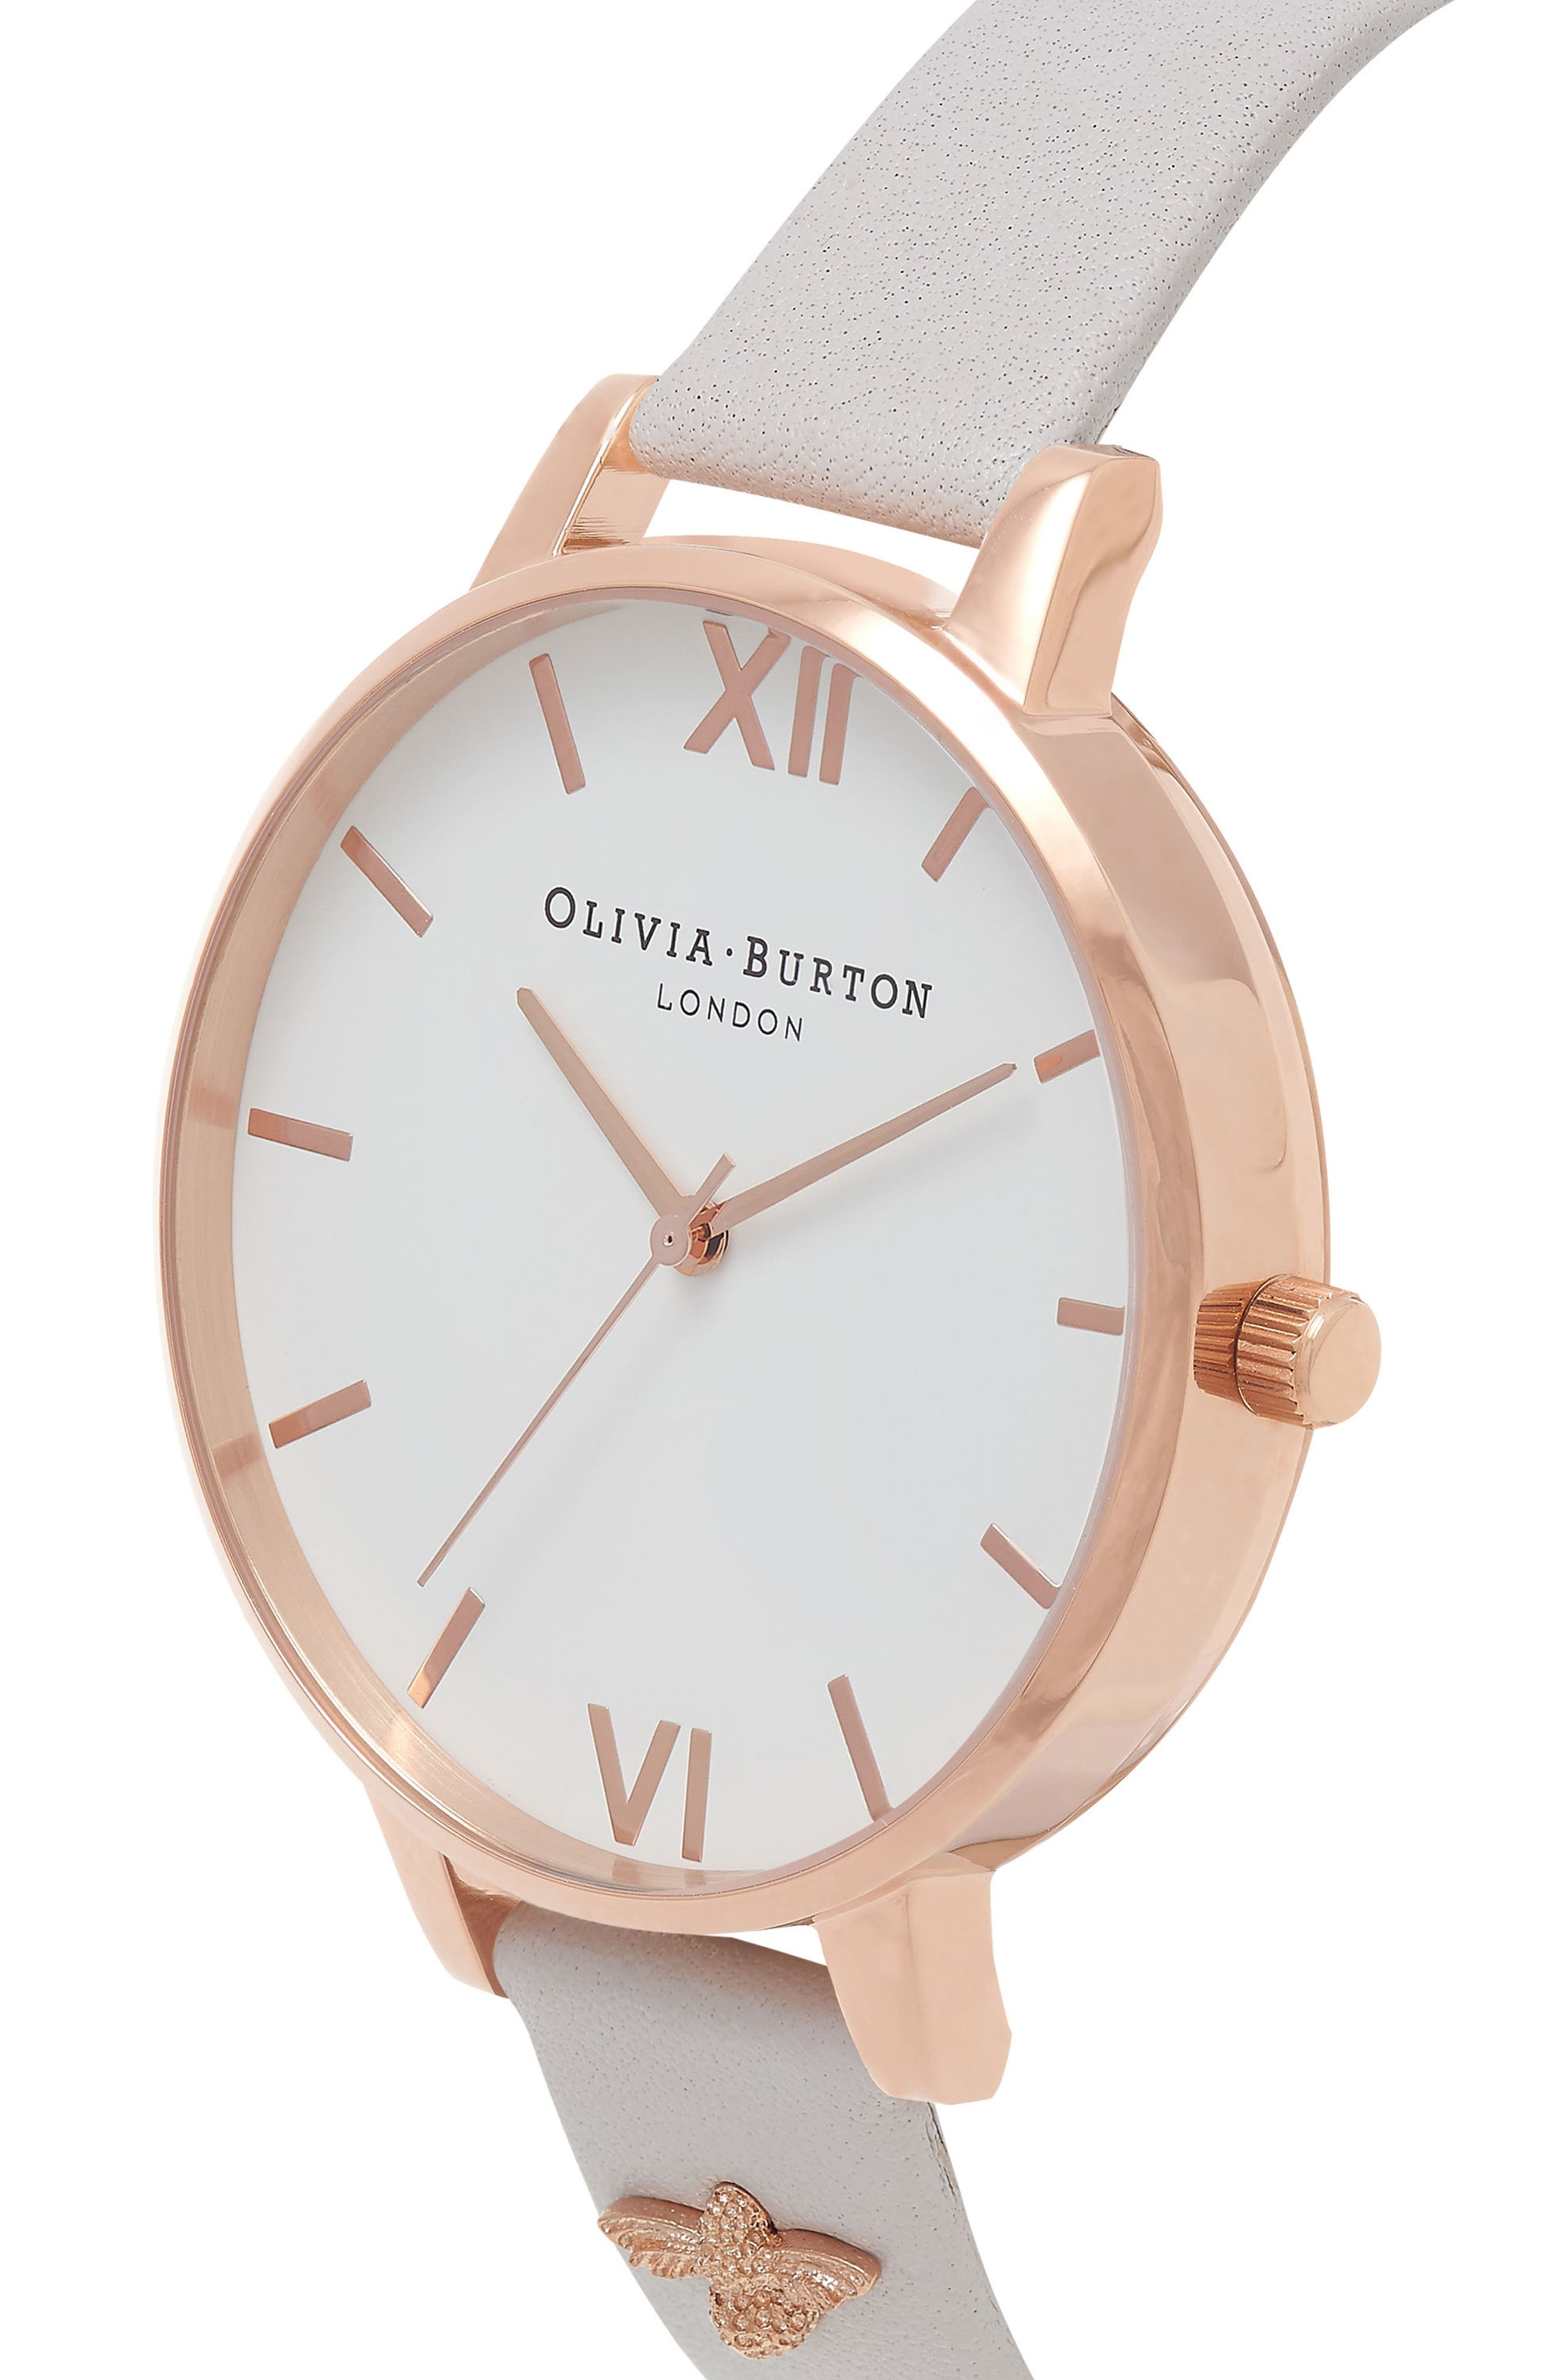 3D Bee Leather Strap Watch, 38mm,                             Alternate thumbnail 3, color,                             Blush/ White/ Rose Gold